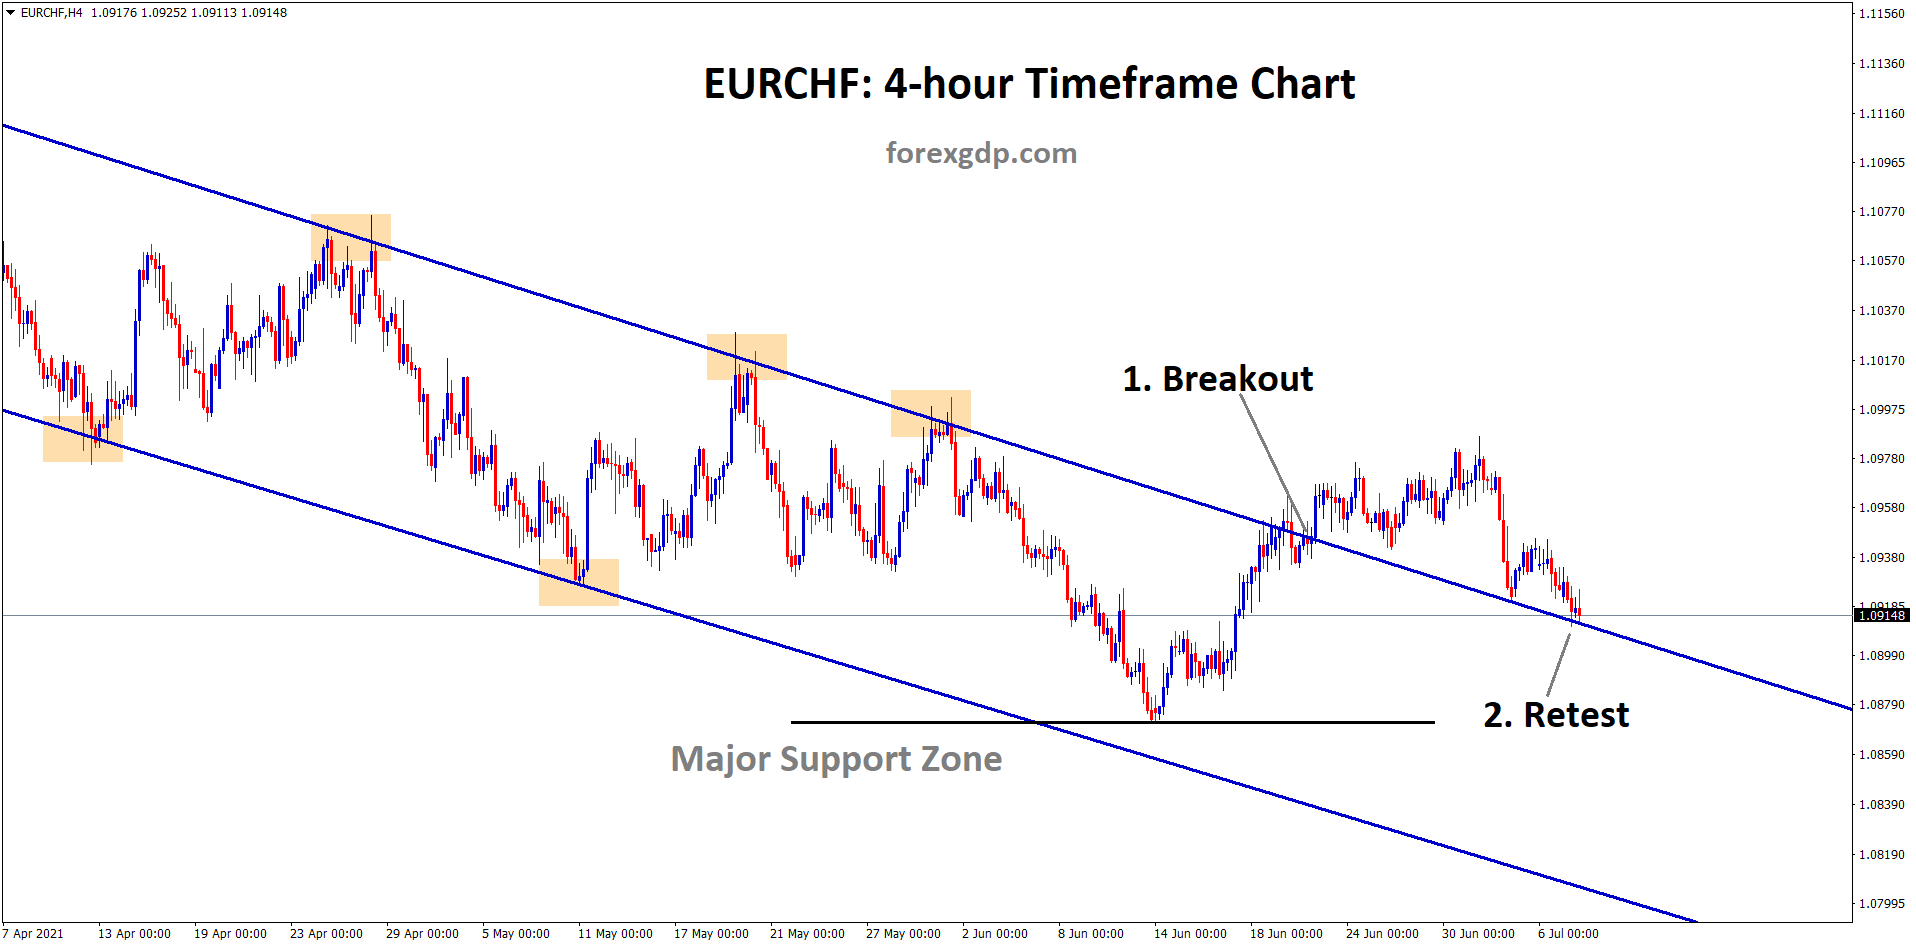 eurchf breakout and retest in the channel line